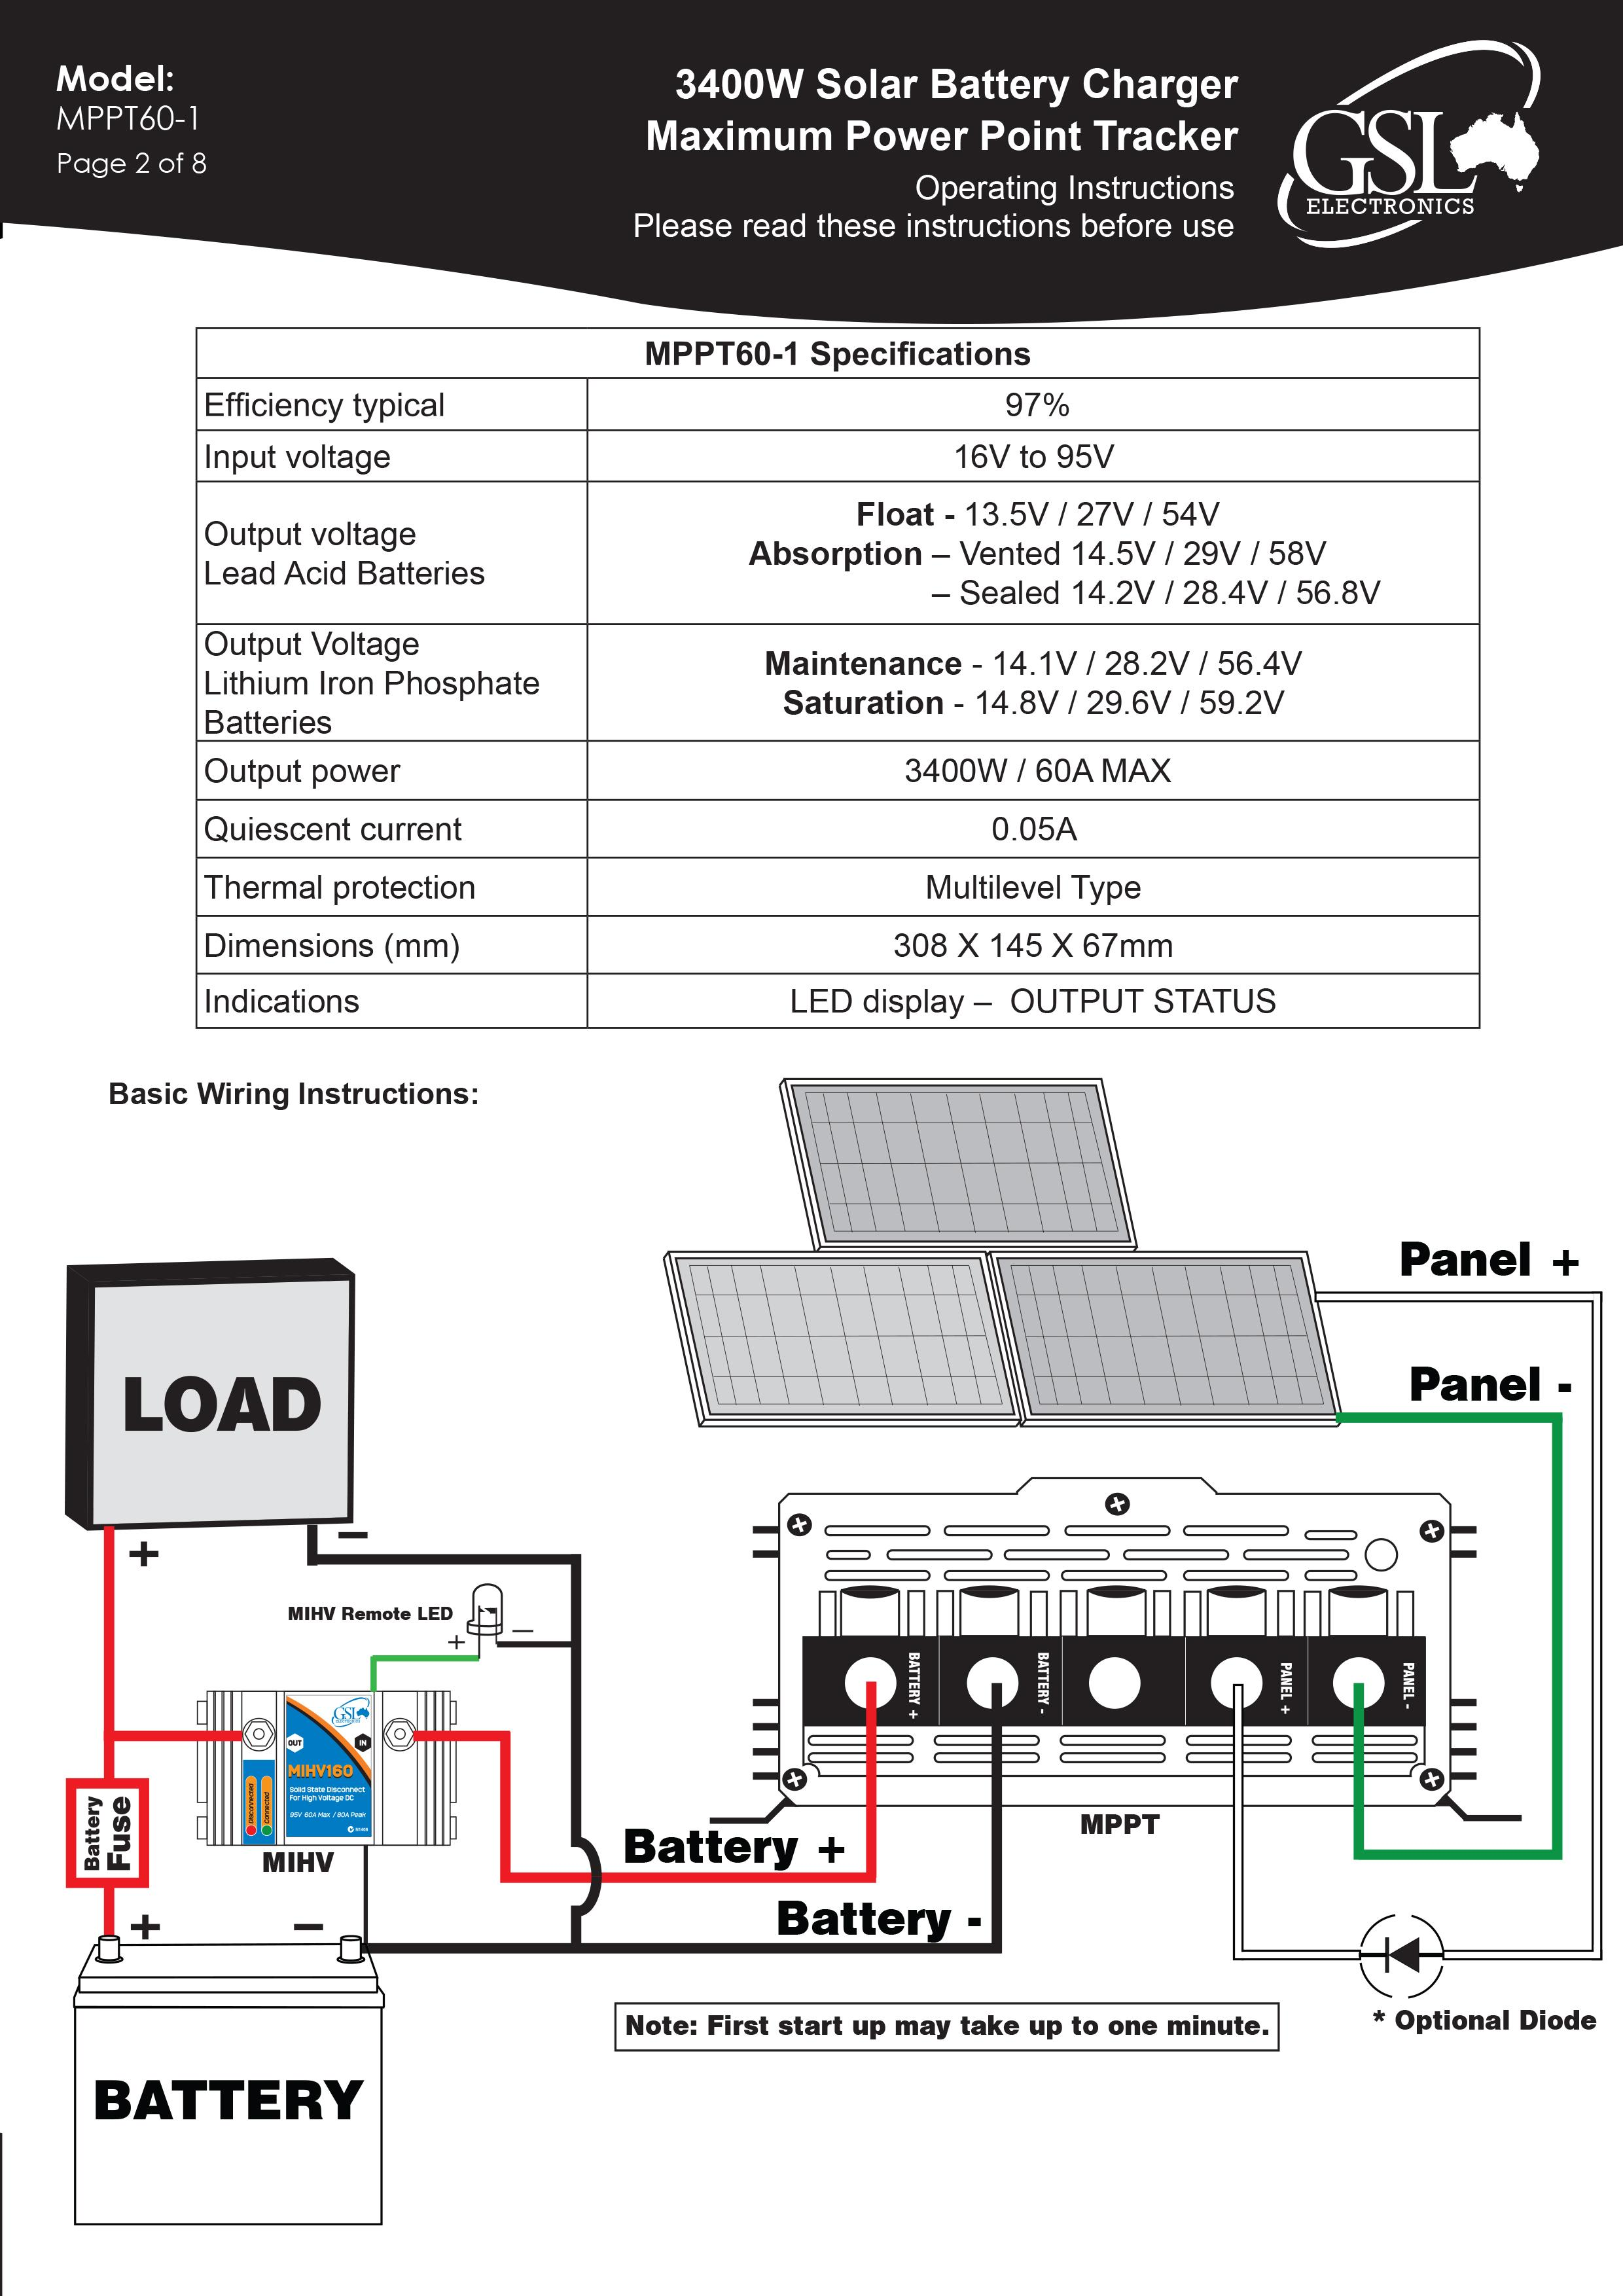 Gsl Mppt Solar Charger 60amp Home Of 12 Volt Controller 145v Open Circuit Voltage Charge Maximum Power Point Tracking Regulator Faqs